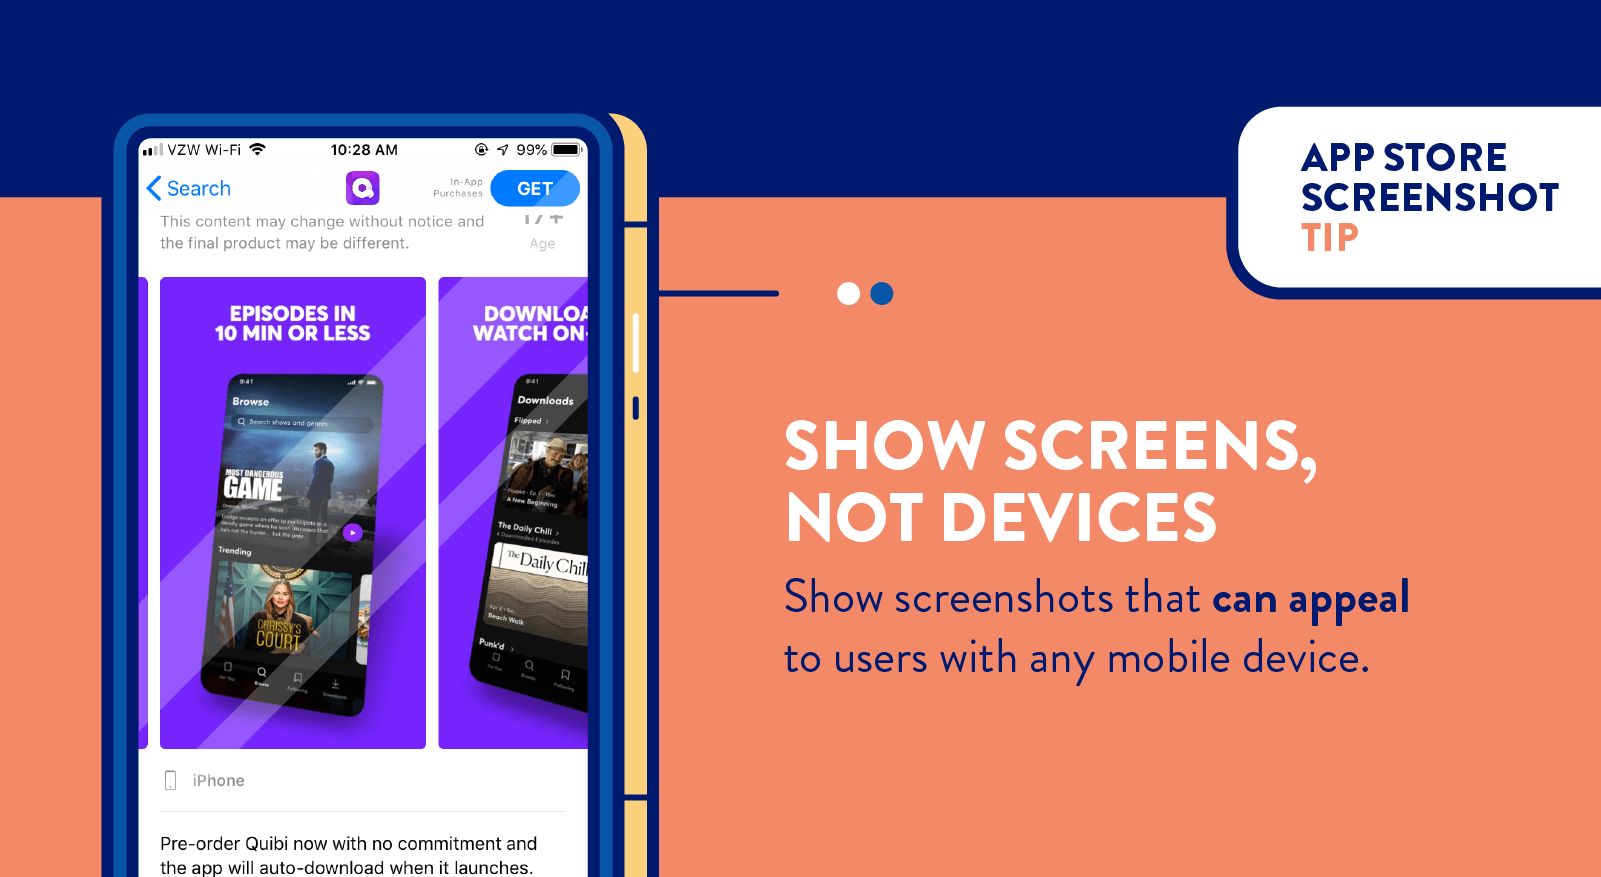 app store screenshots to show screens not devices